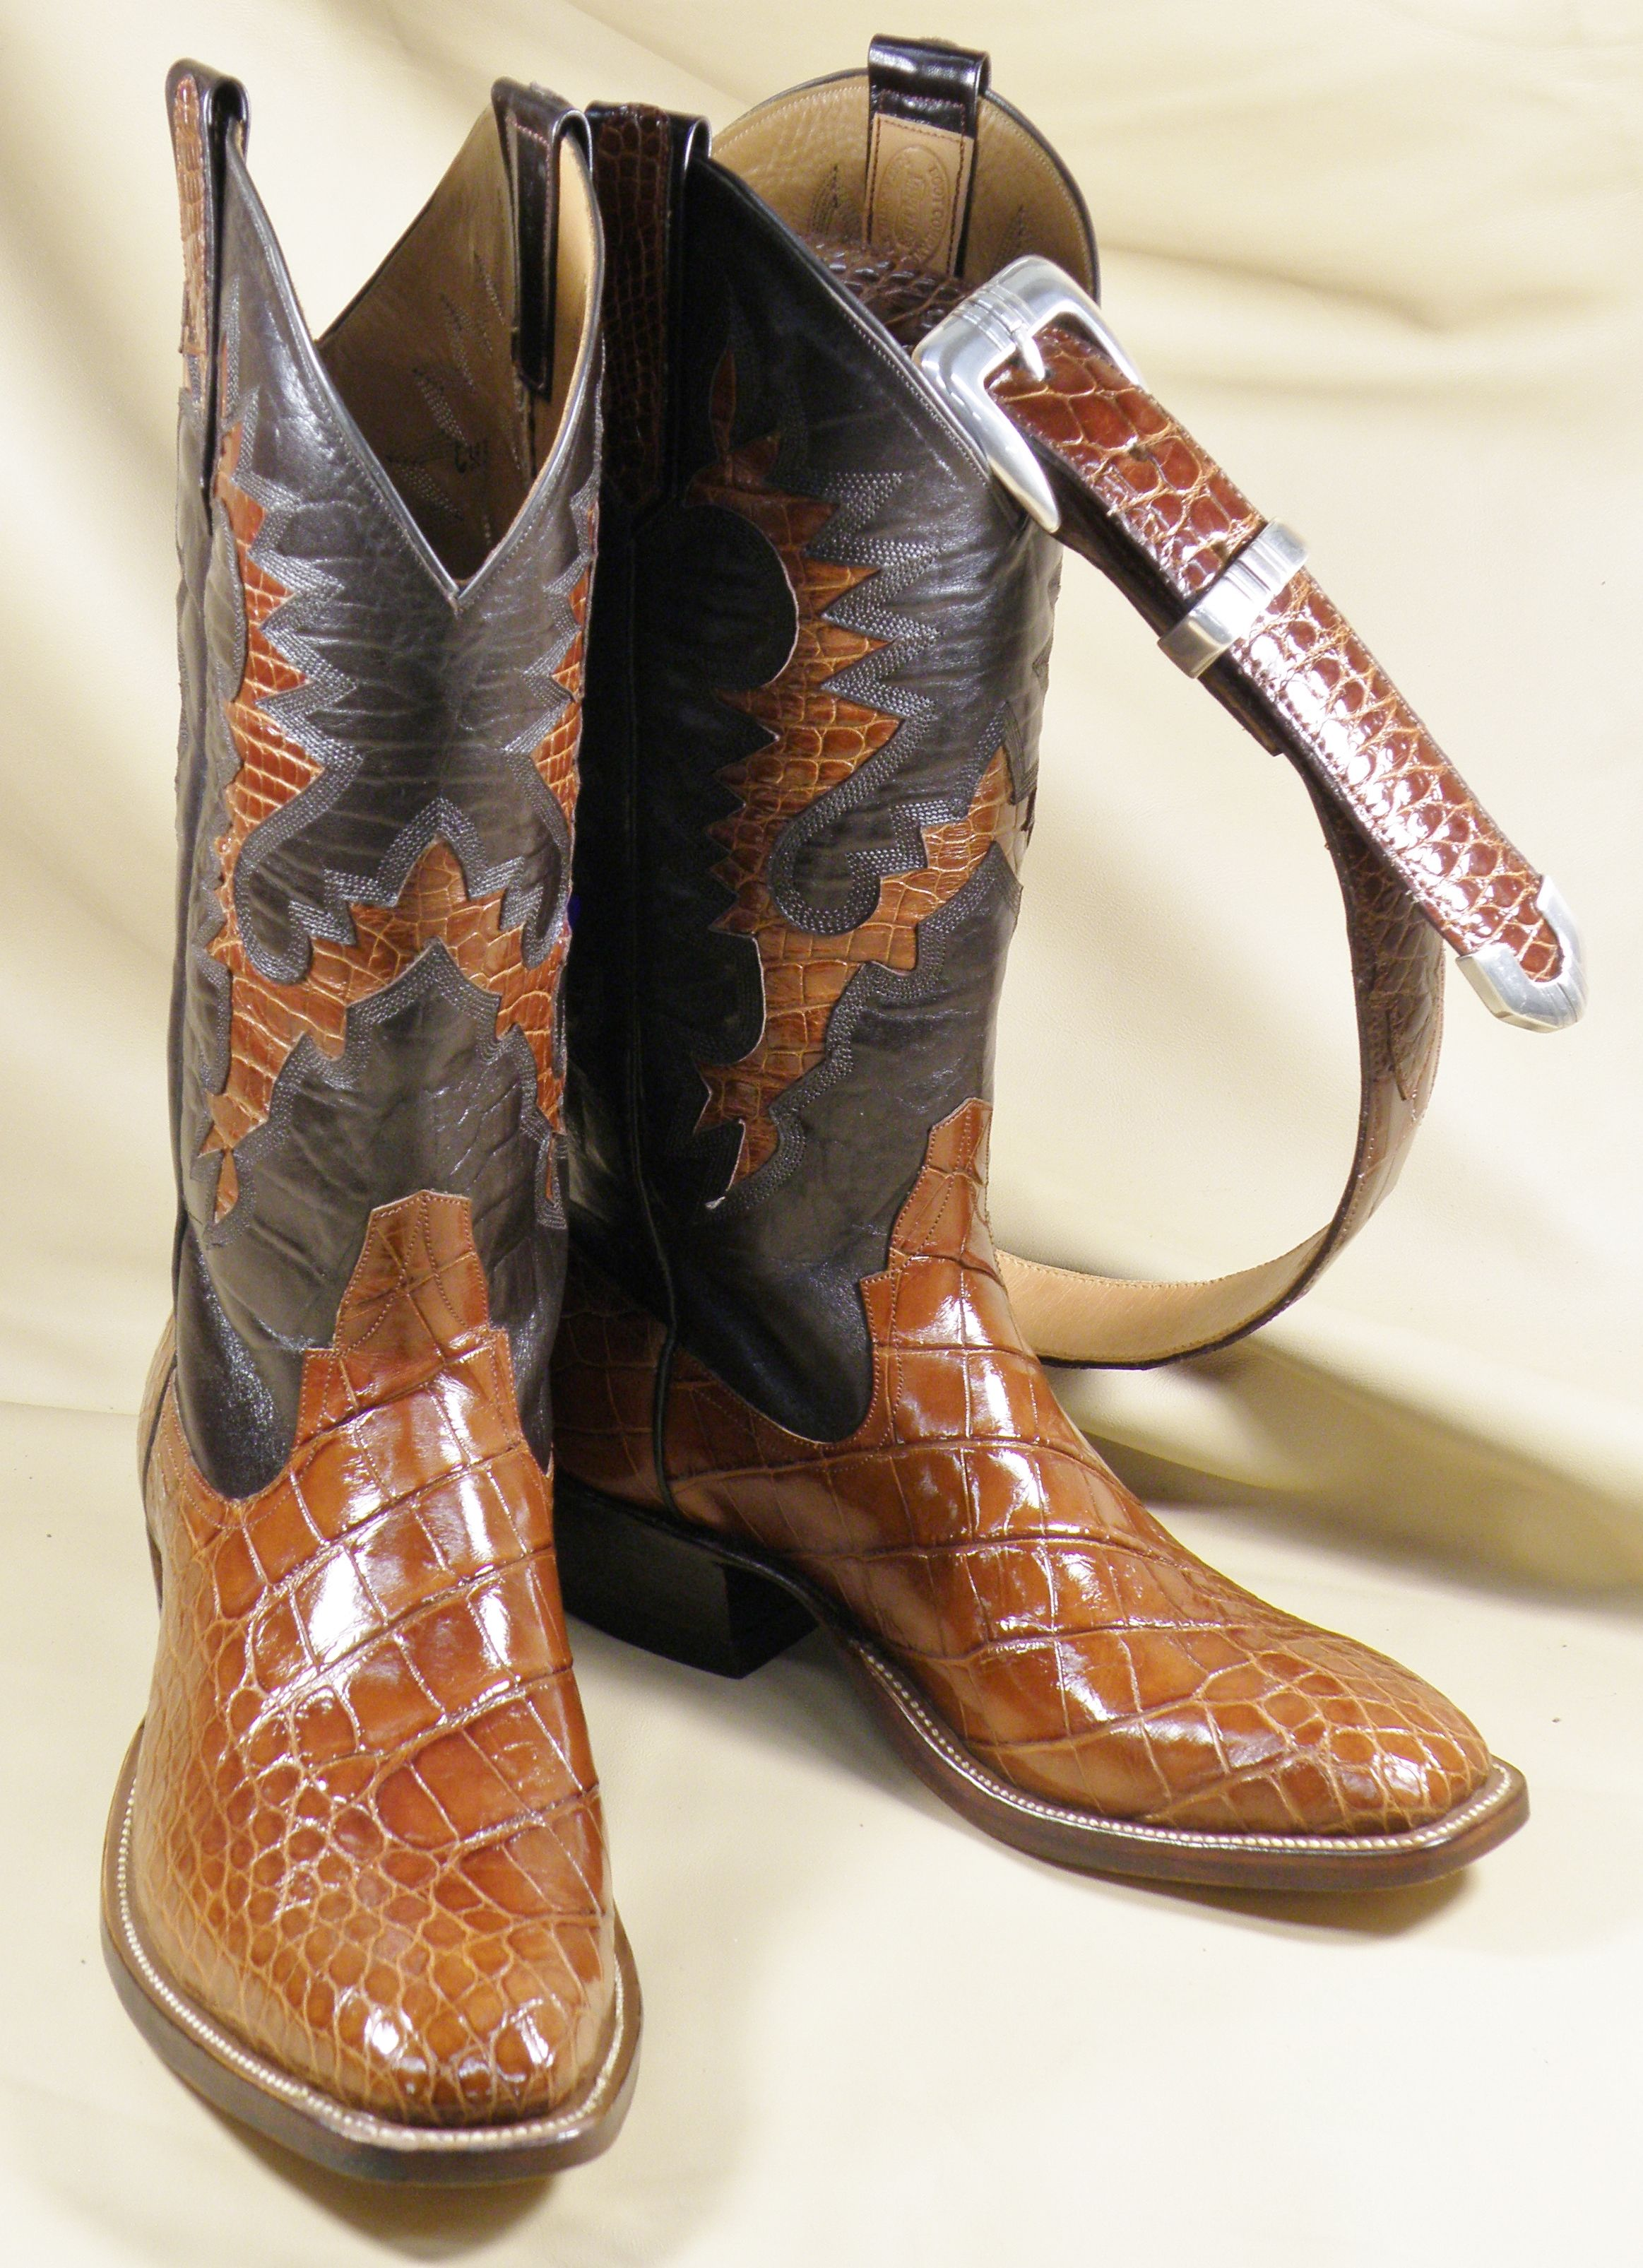 4b94b447134 The only thing better than custom alligator boots is alligator boots ...